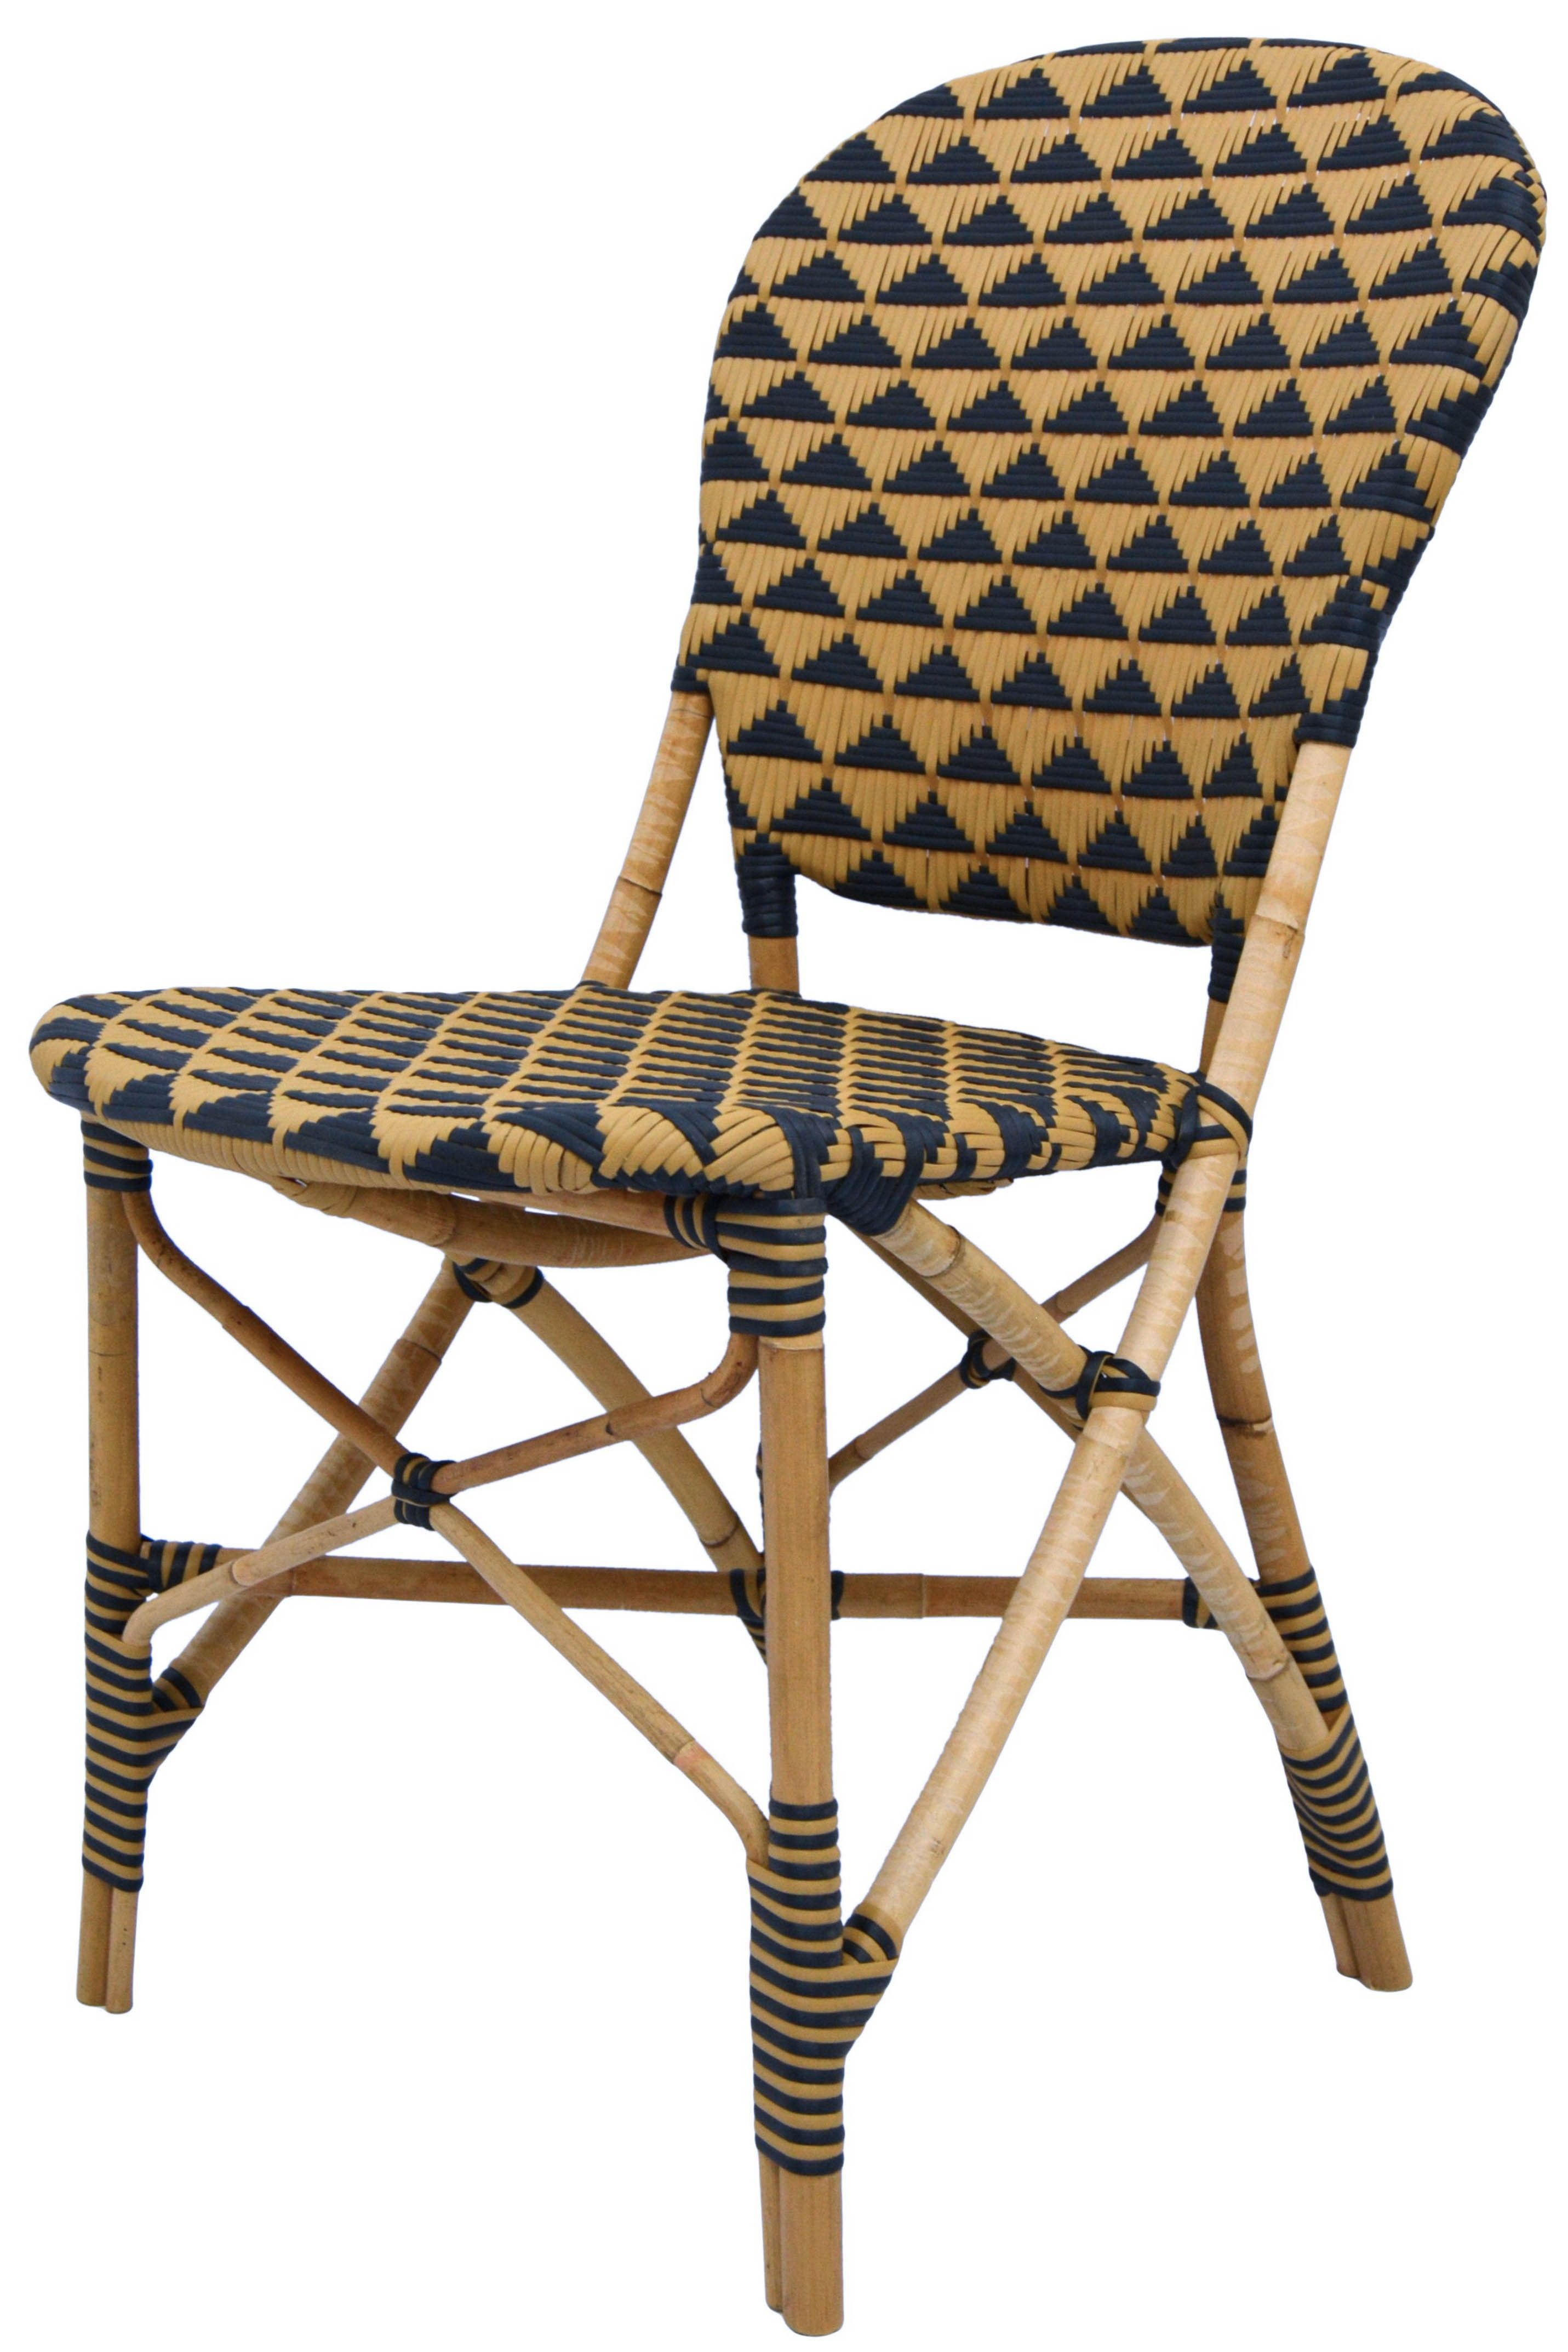 Theyla Indoor Outdoor Dining Chair Natural And Black Outdoor Side Chairs Side Chairs Rattan Chair